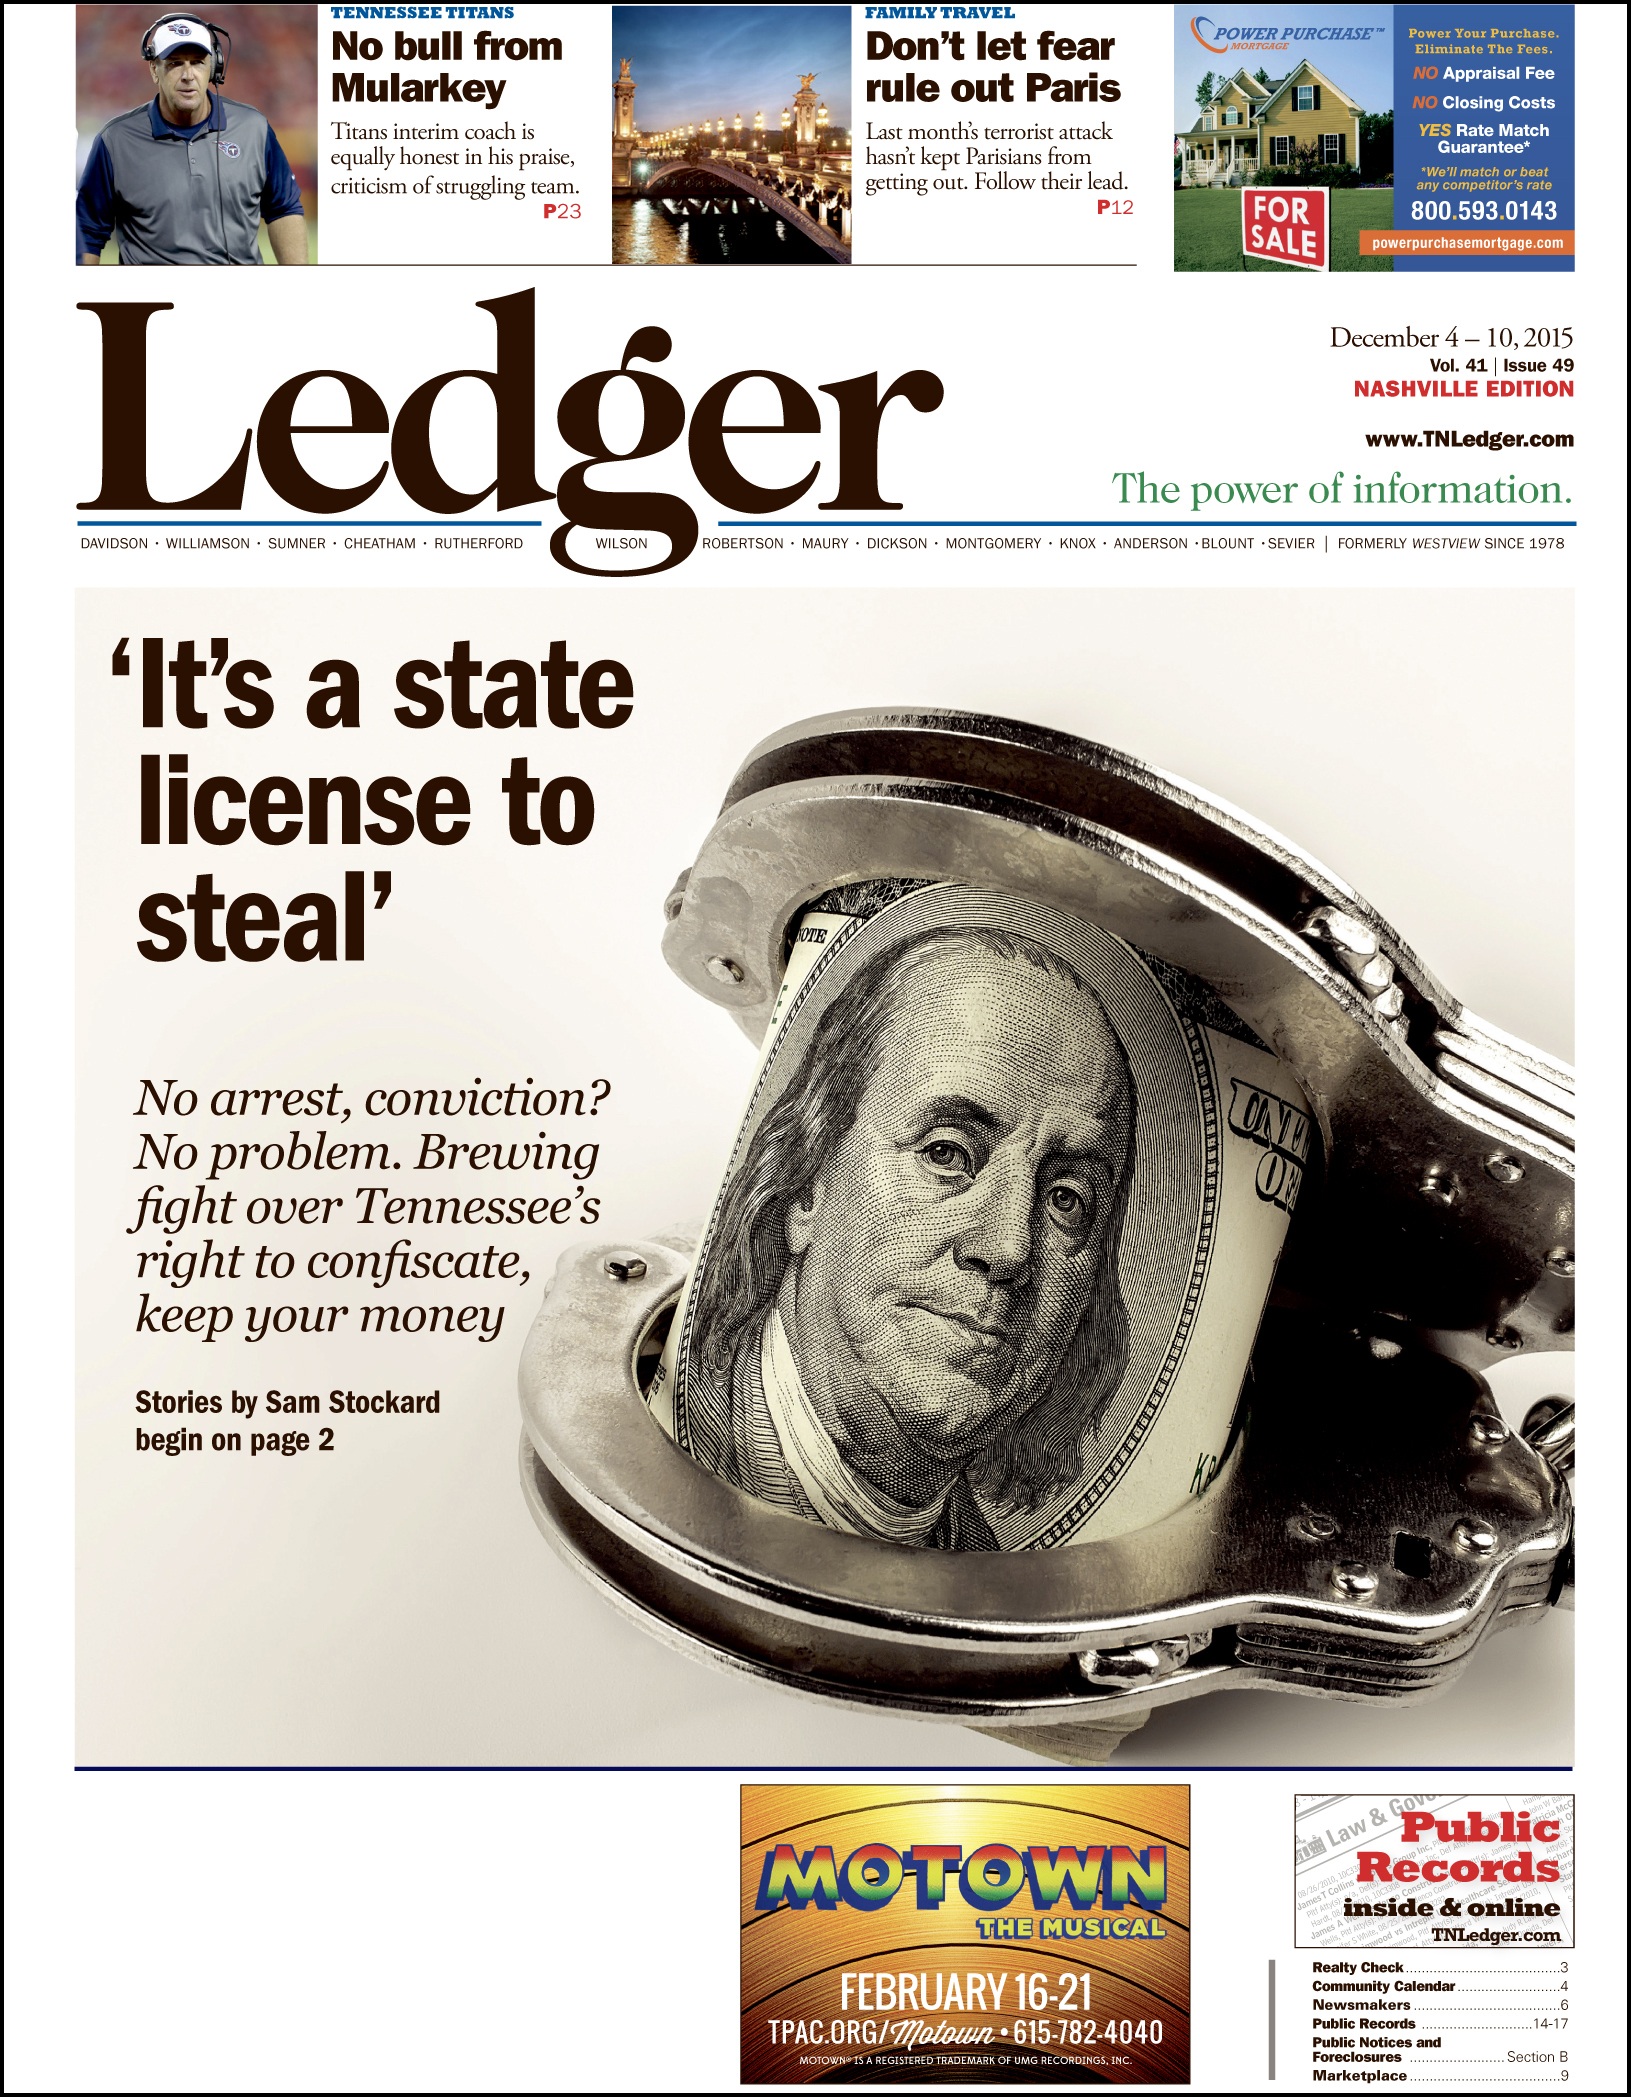 Civil asset forfeiture: 'It's a state license to steal' - The